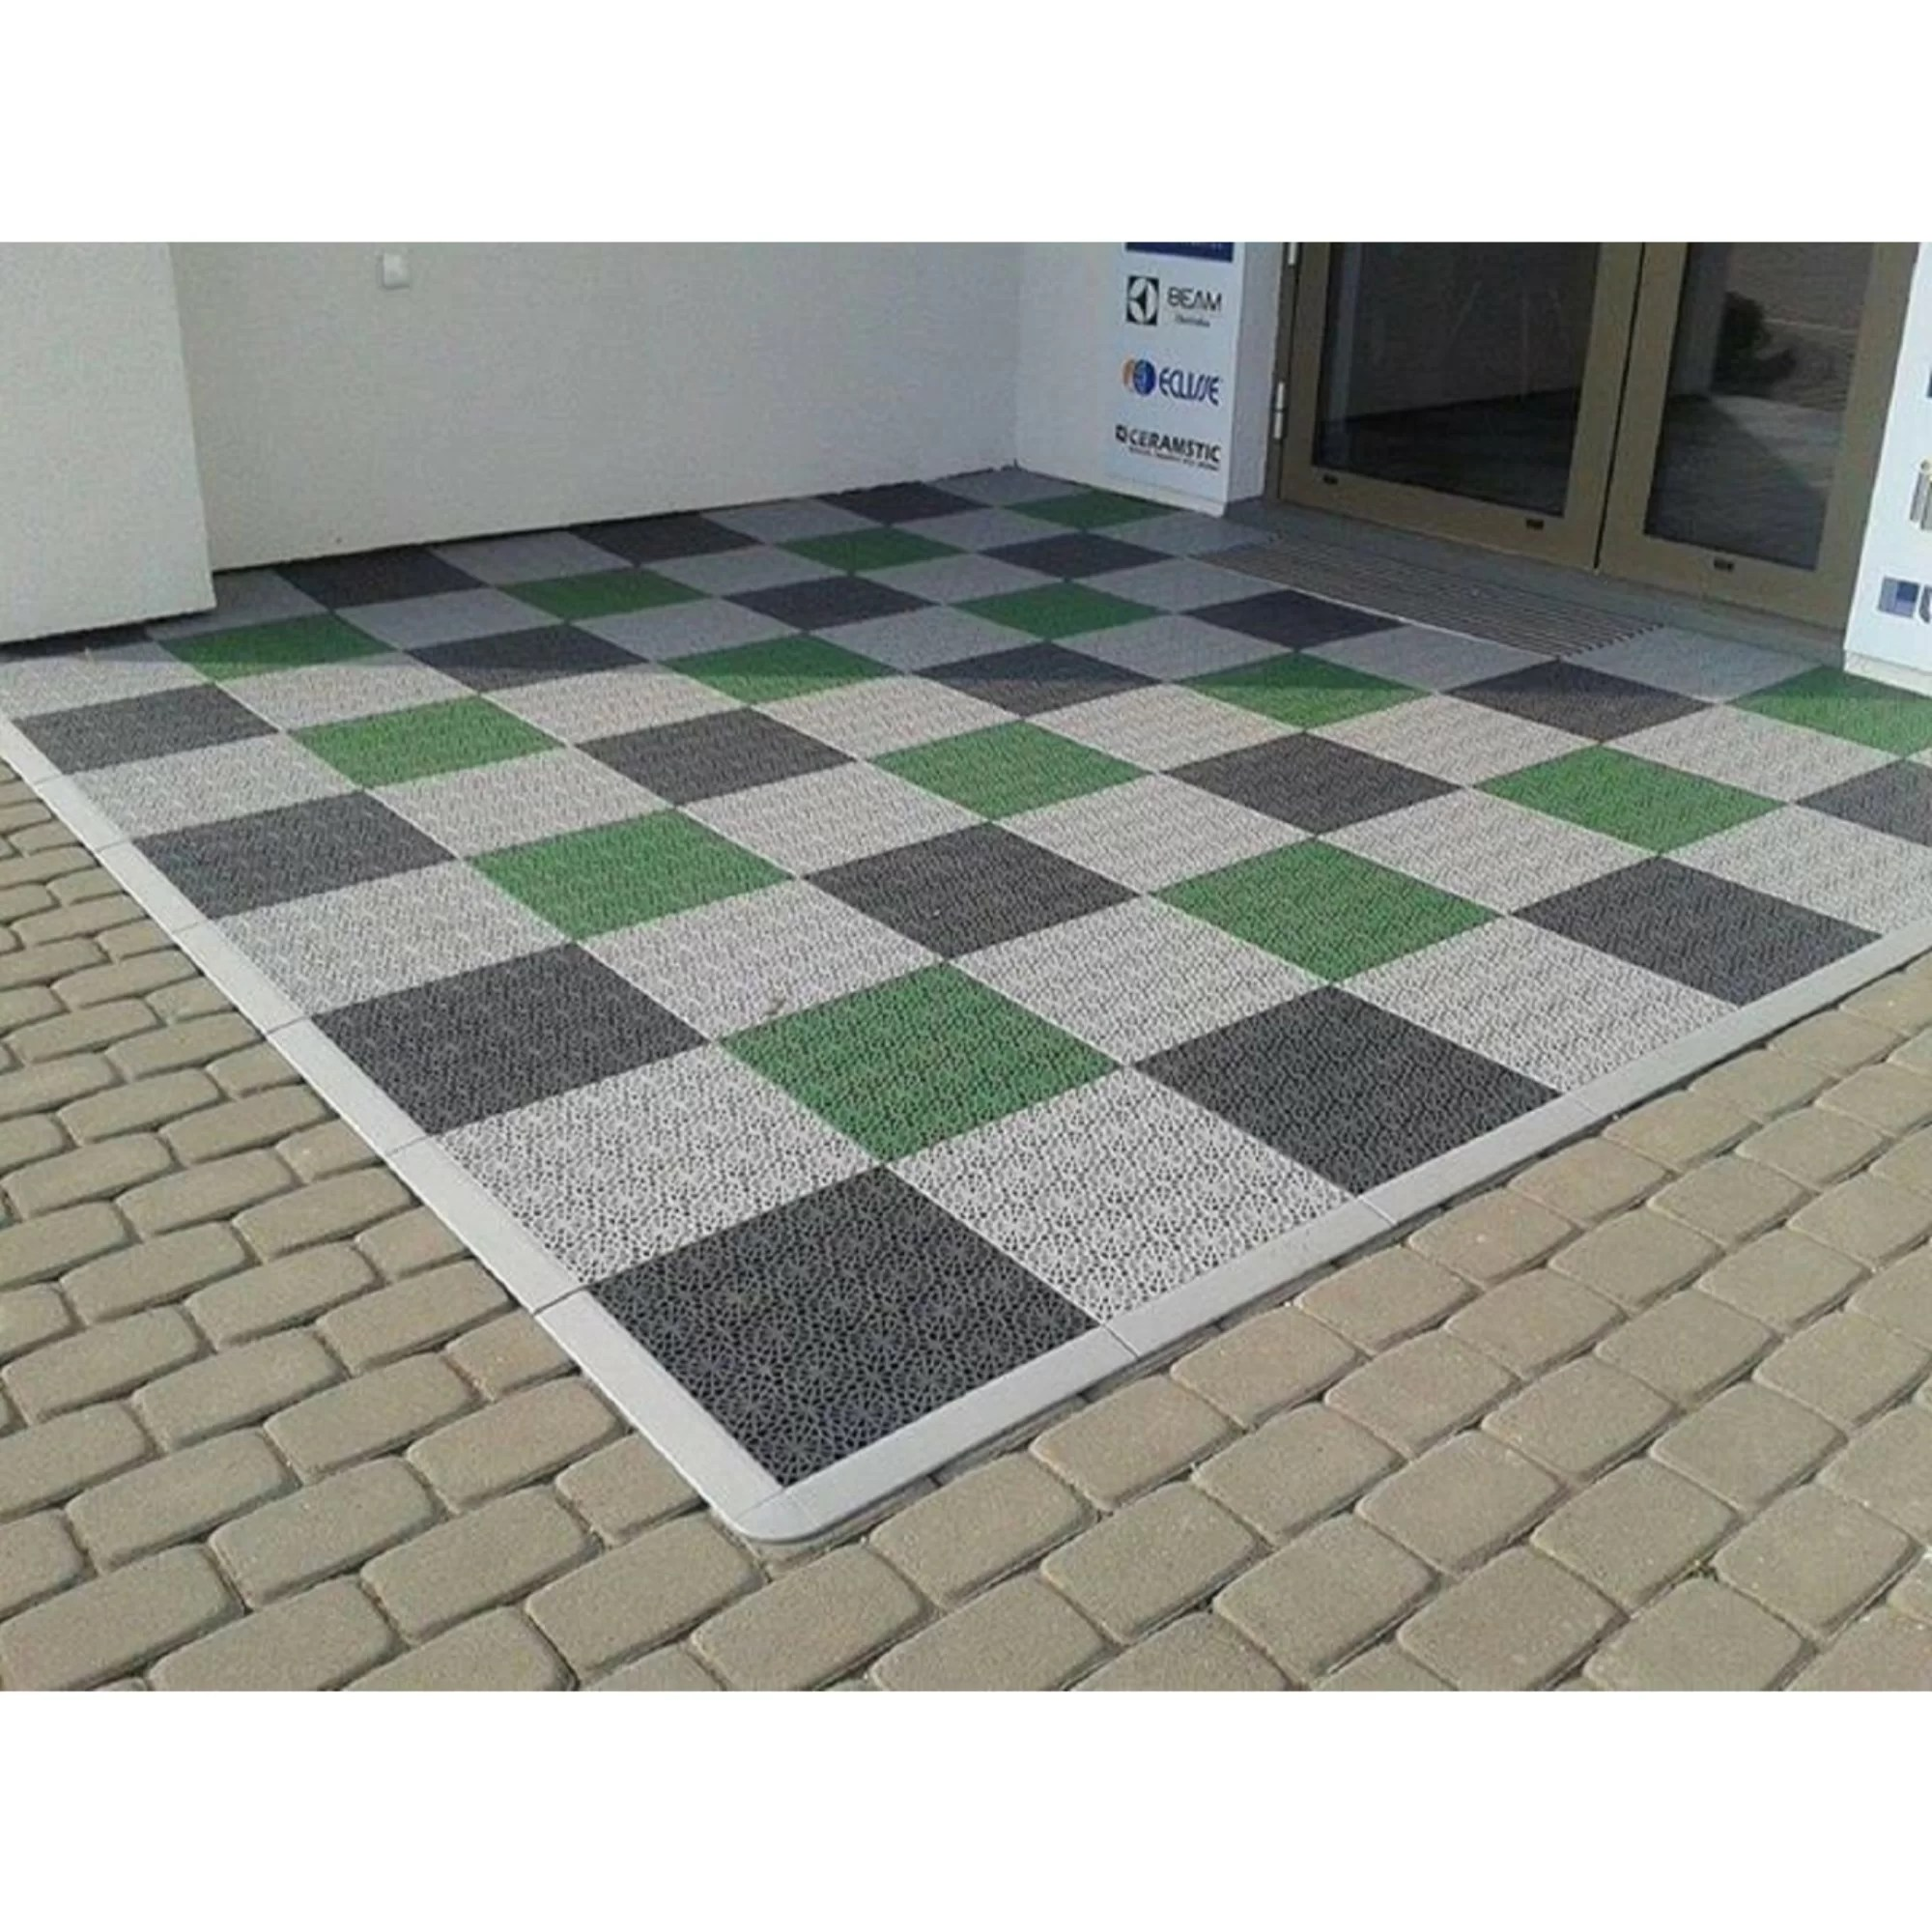 Interlocking Deck Tiles Bergo 14 8